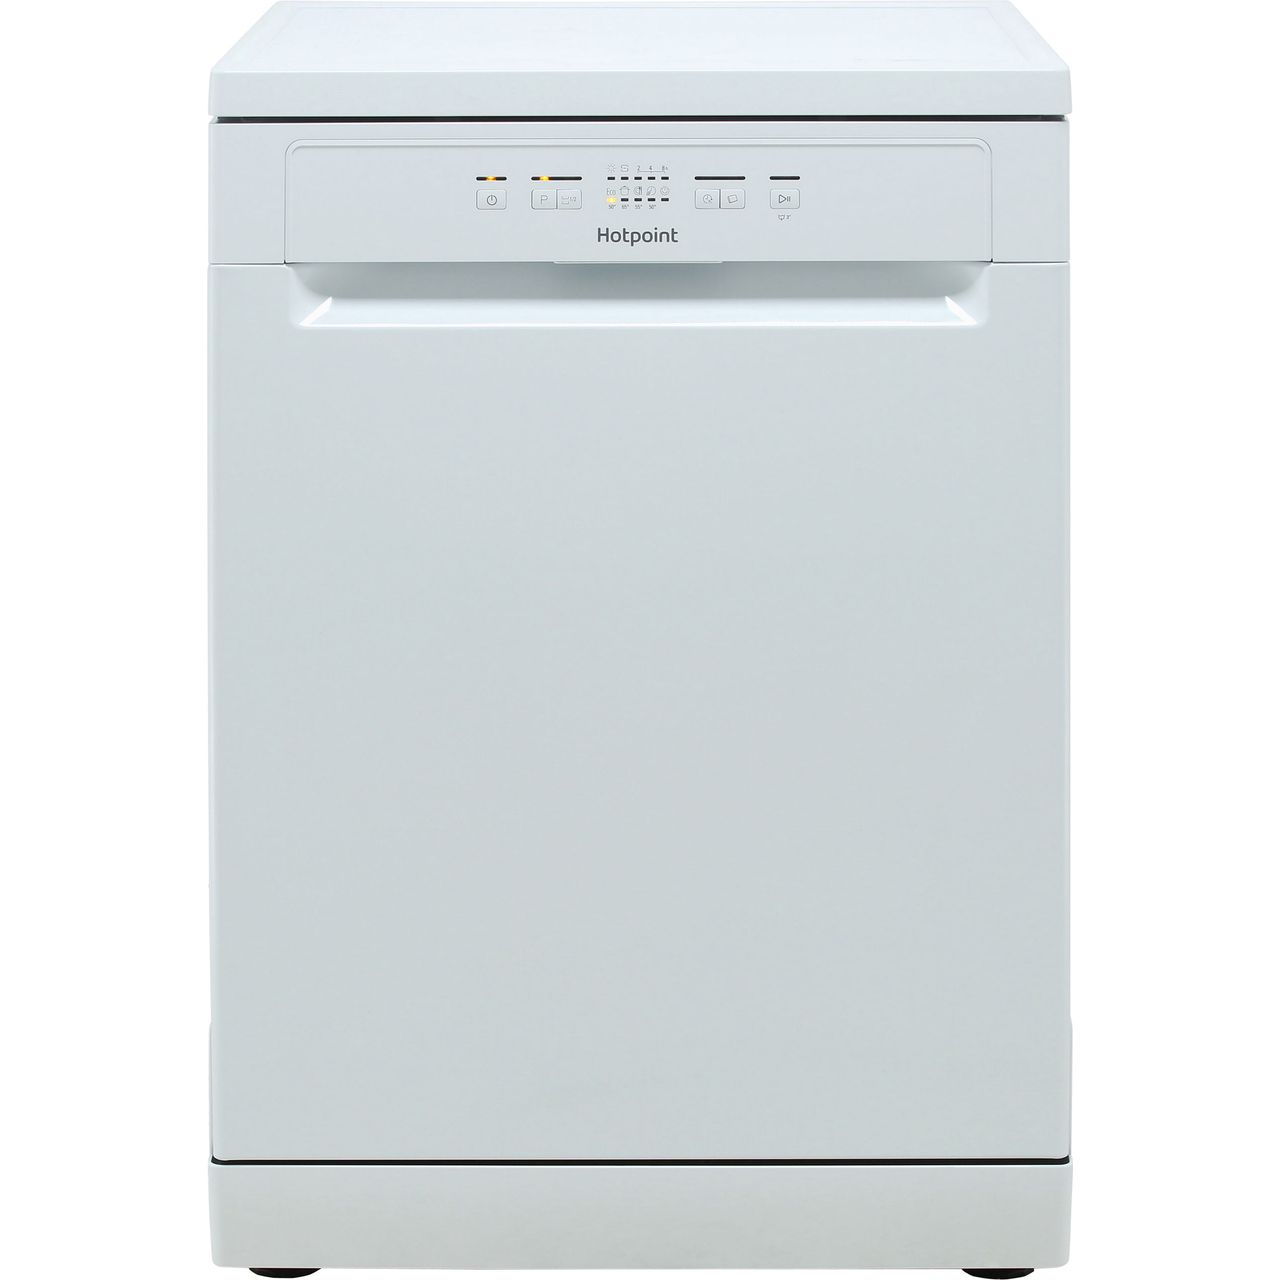 Hotpoint Hfc 2b+26 X Hotpoint Hfc2b19 A 43 Dishwasher Full Size 60cm 13 Place